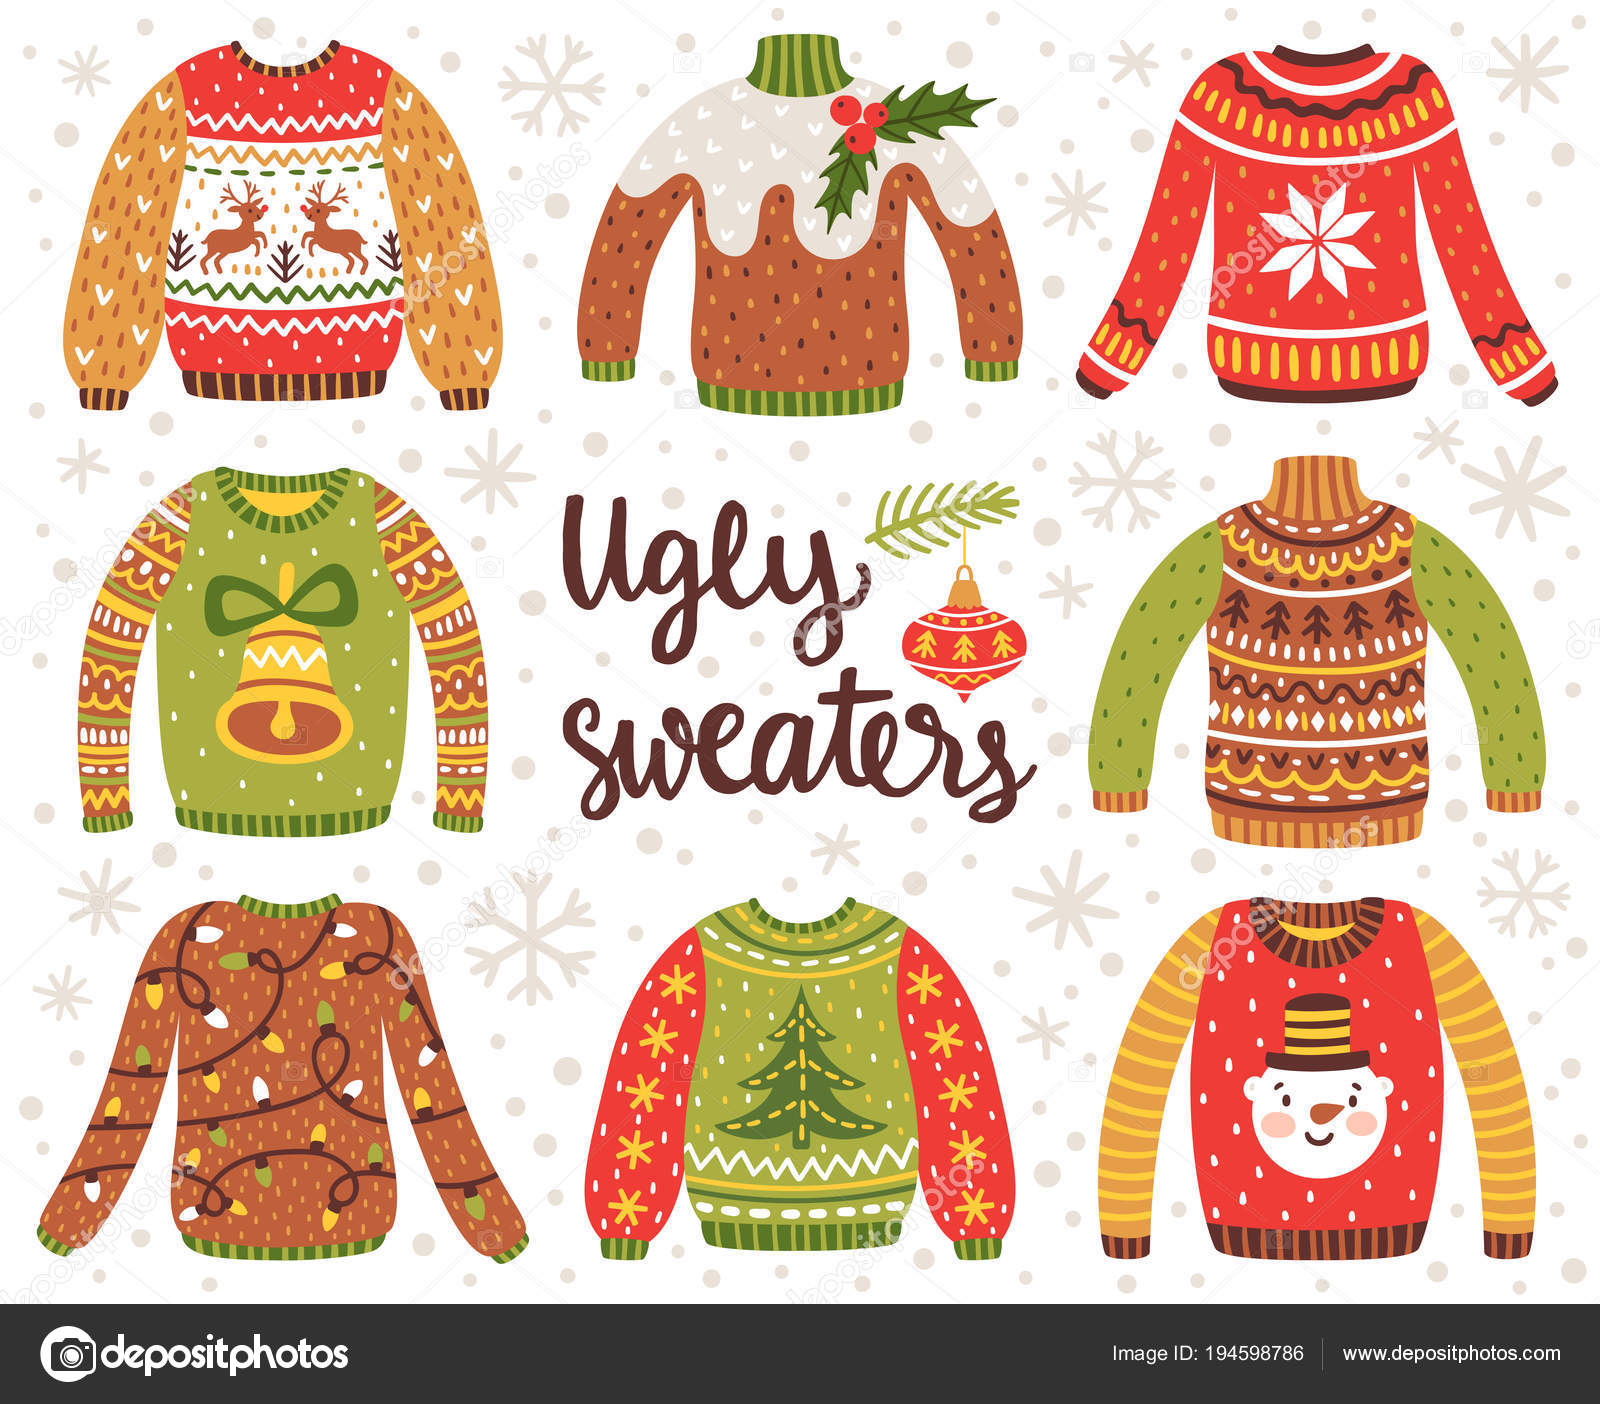 Vector set of ugly Christmas sweaters with norwegian ornaments and holidays decorations. Collection of knitted